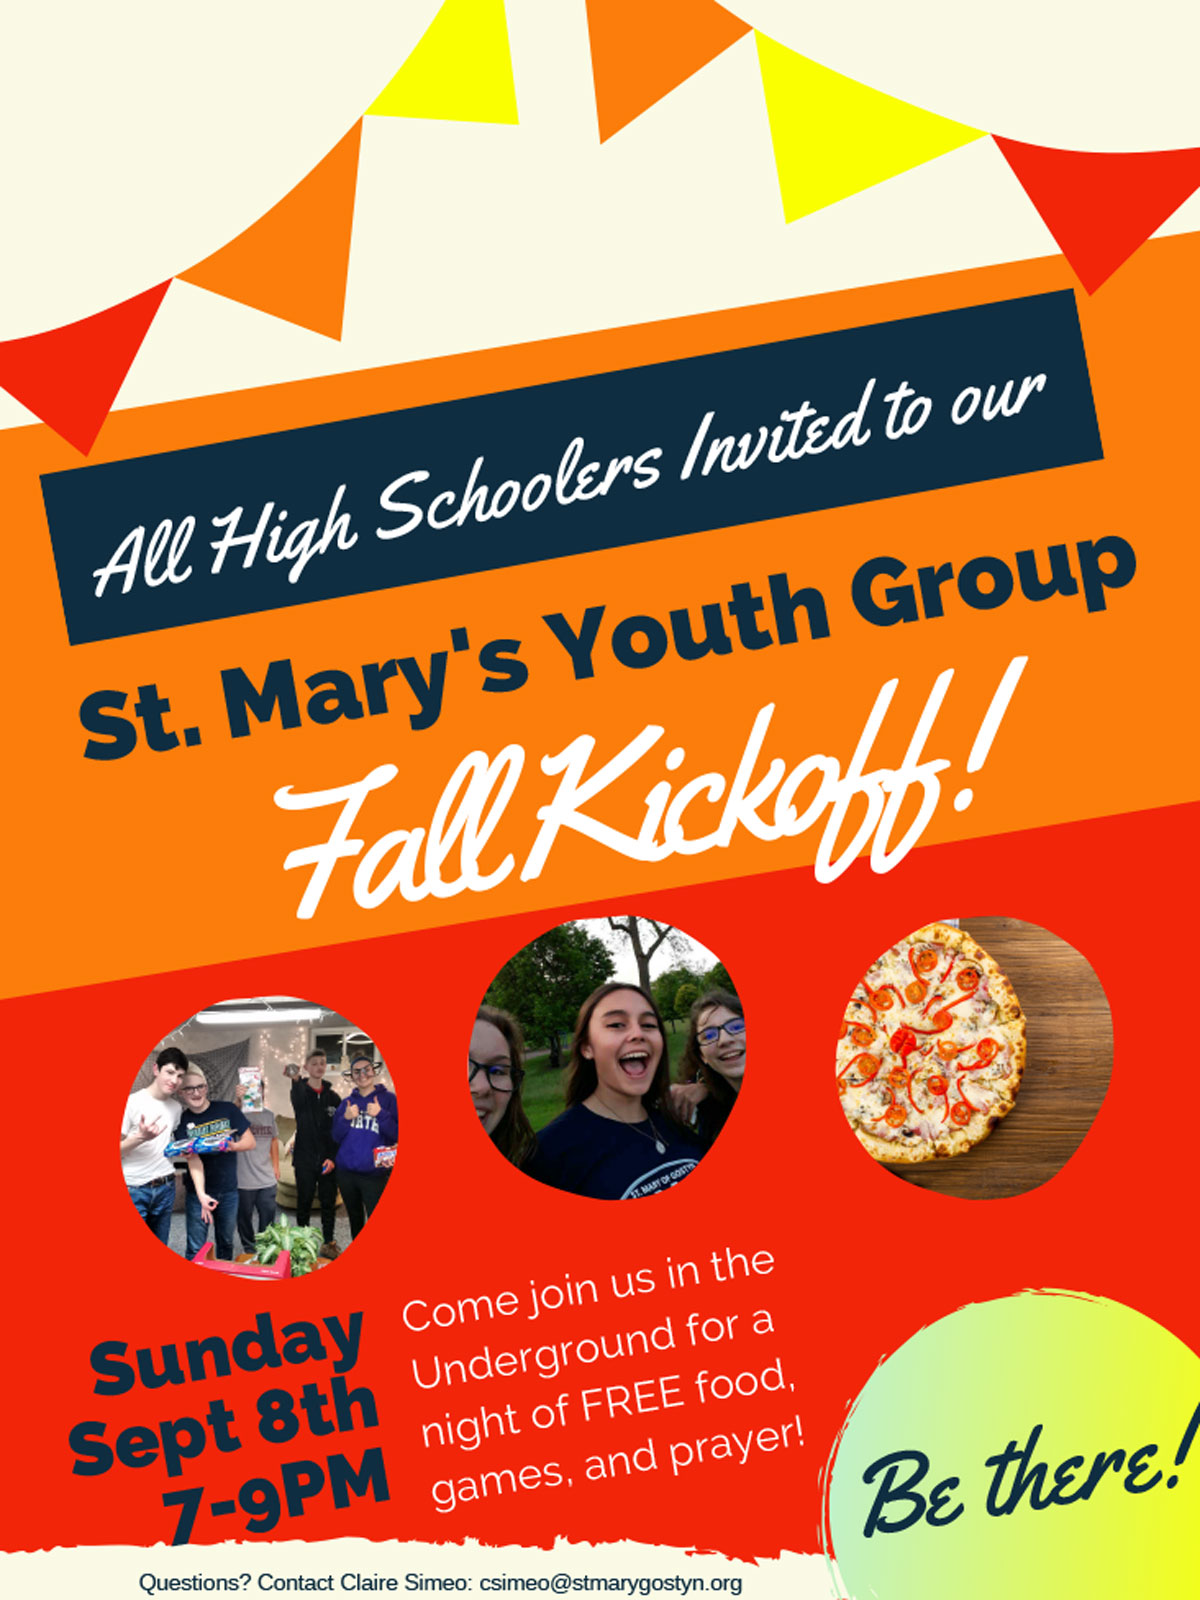 Youth-Group-Kickoff-Flyer-2019